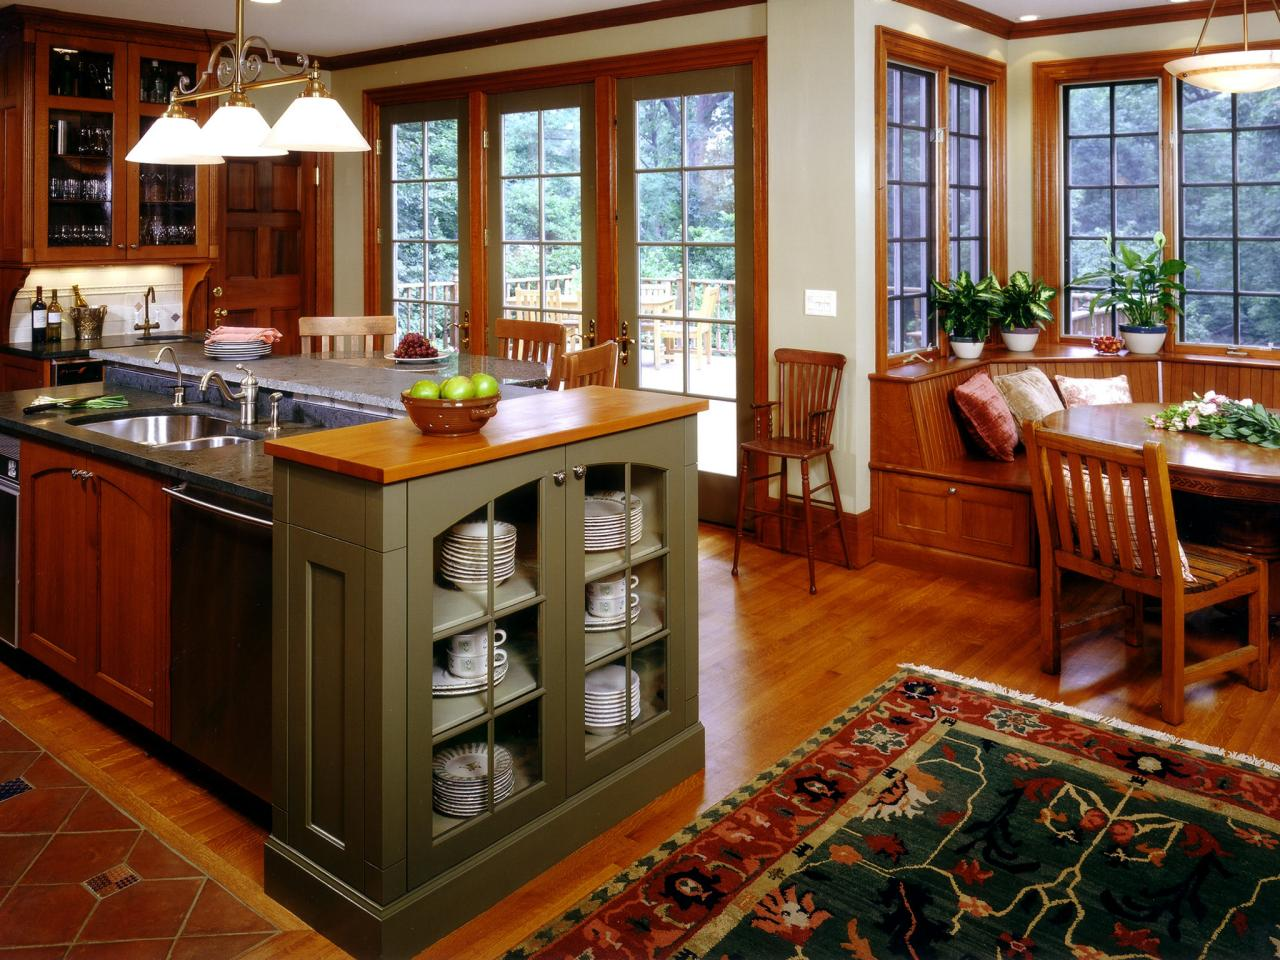 Craftsman-Style Kitchen Cabinets: HGTV Pictures & Ideas | HGTV